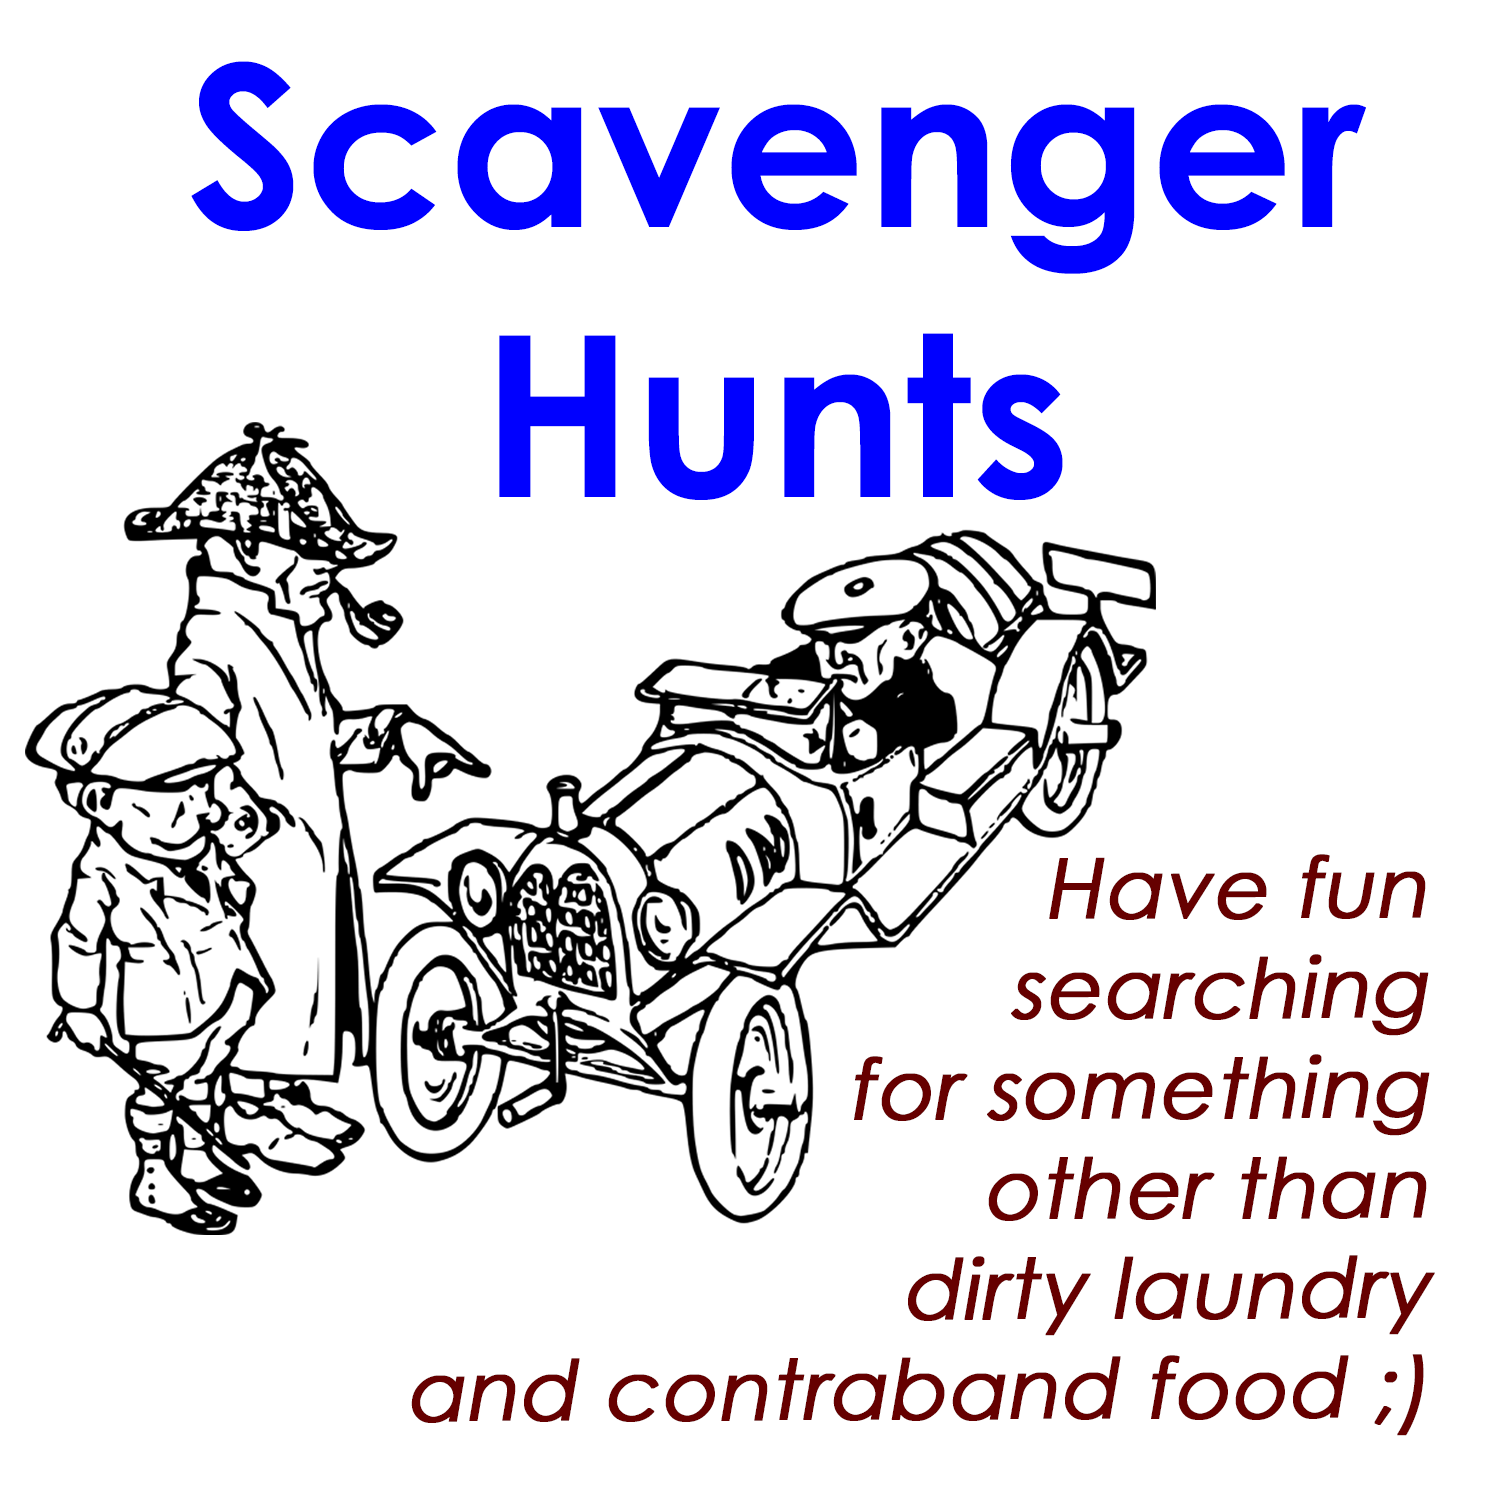 Link to Activities page with Scavenger Hunts